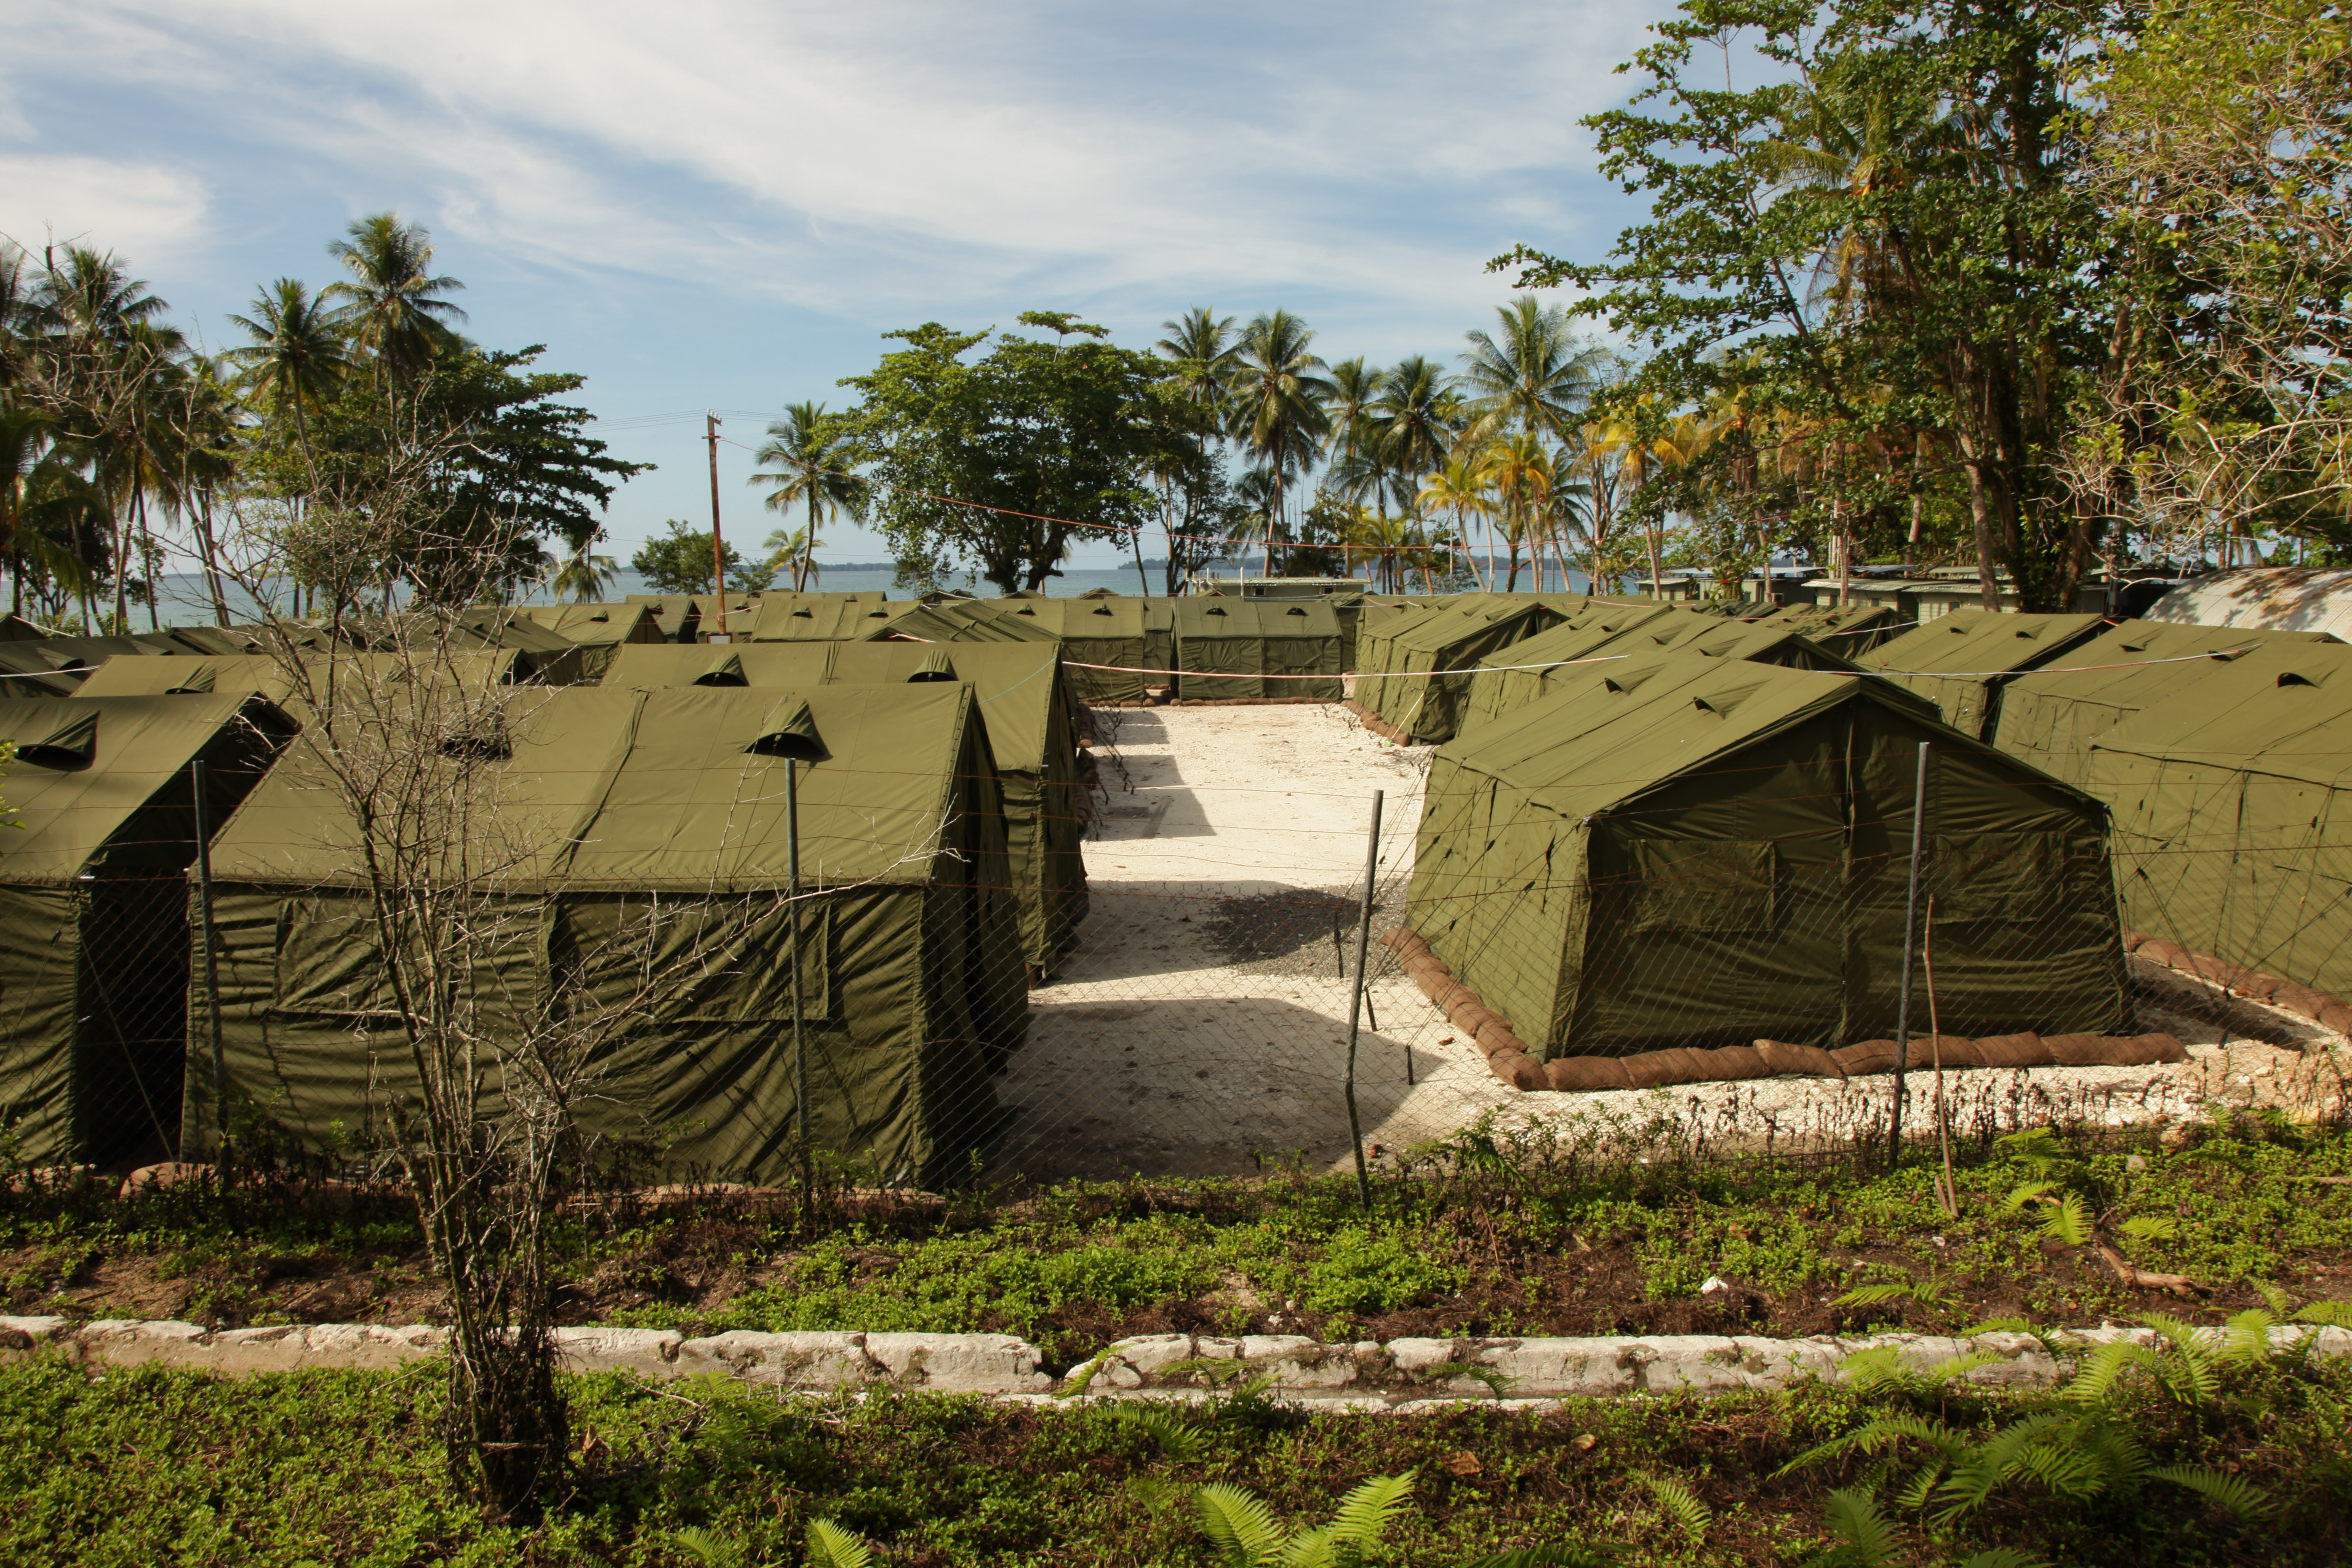 Manus Island Regional Processing Facility, used for the detention of asylum seekers that arrive by boat, seen on Oct. 16, 2012